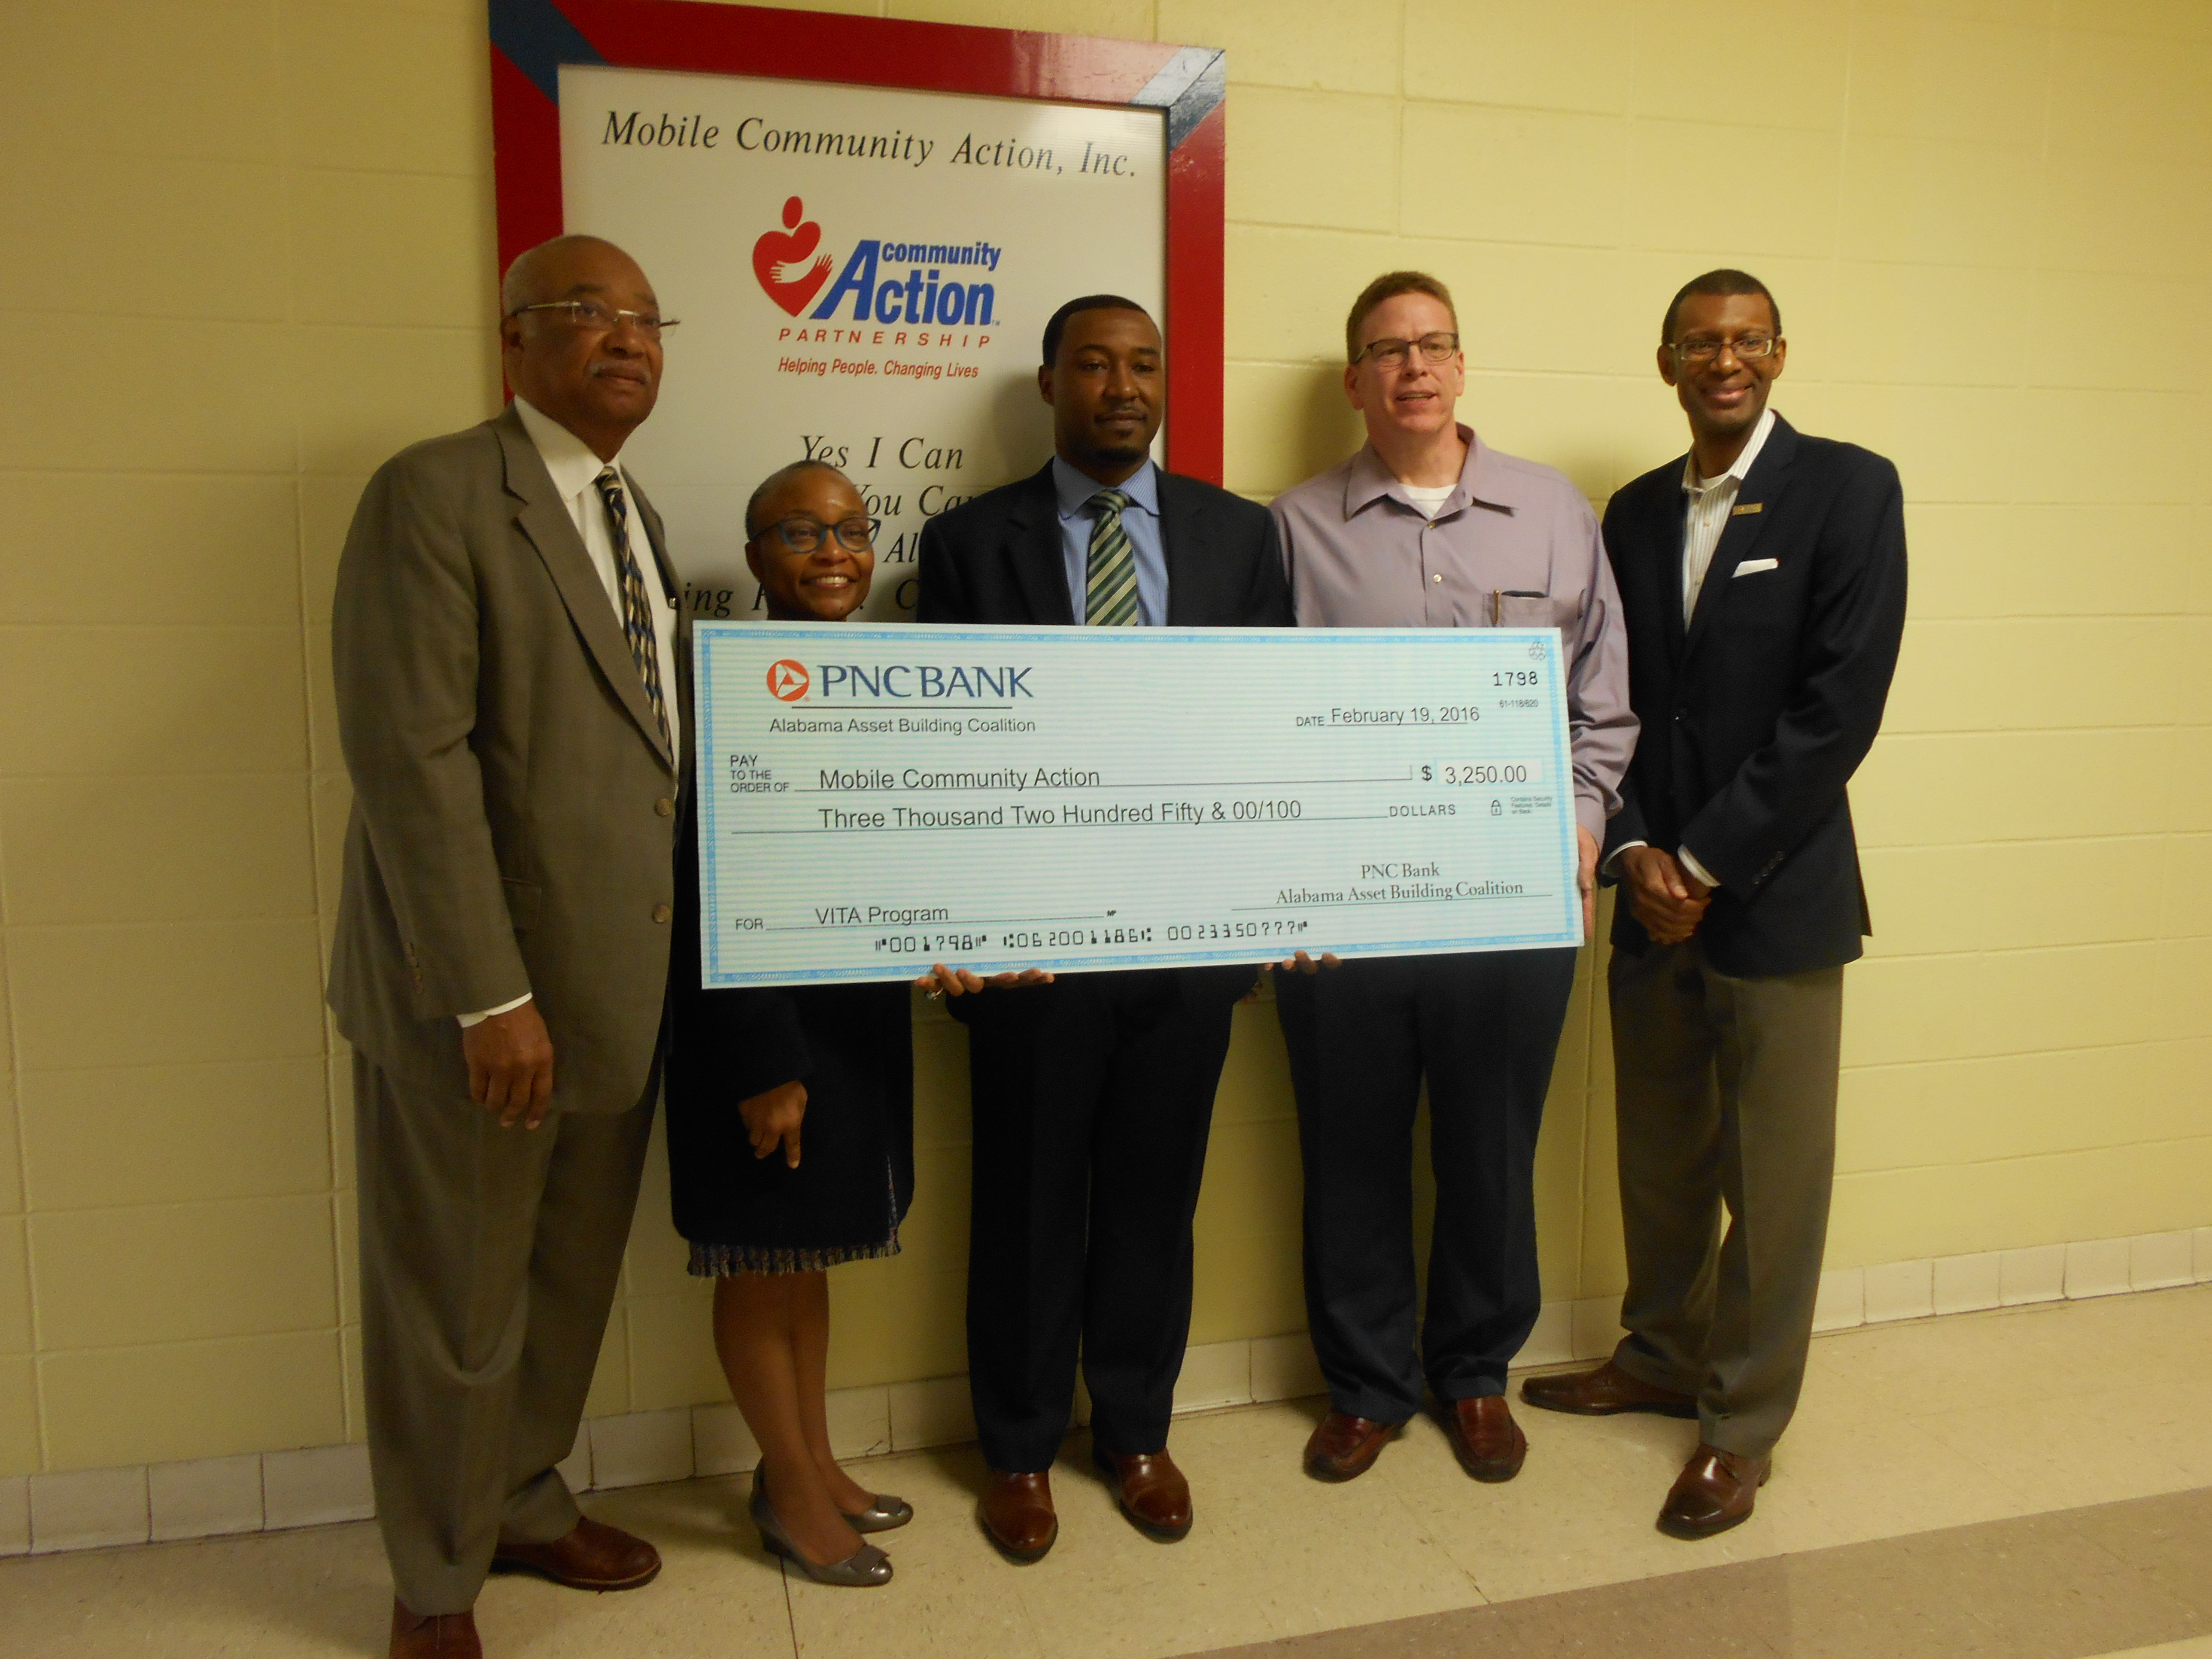 home mobile community action serving mobile al community mobile community action mca in partnership pnc bank and the alabama asset building coalition received funds to support our volunteer income tax